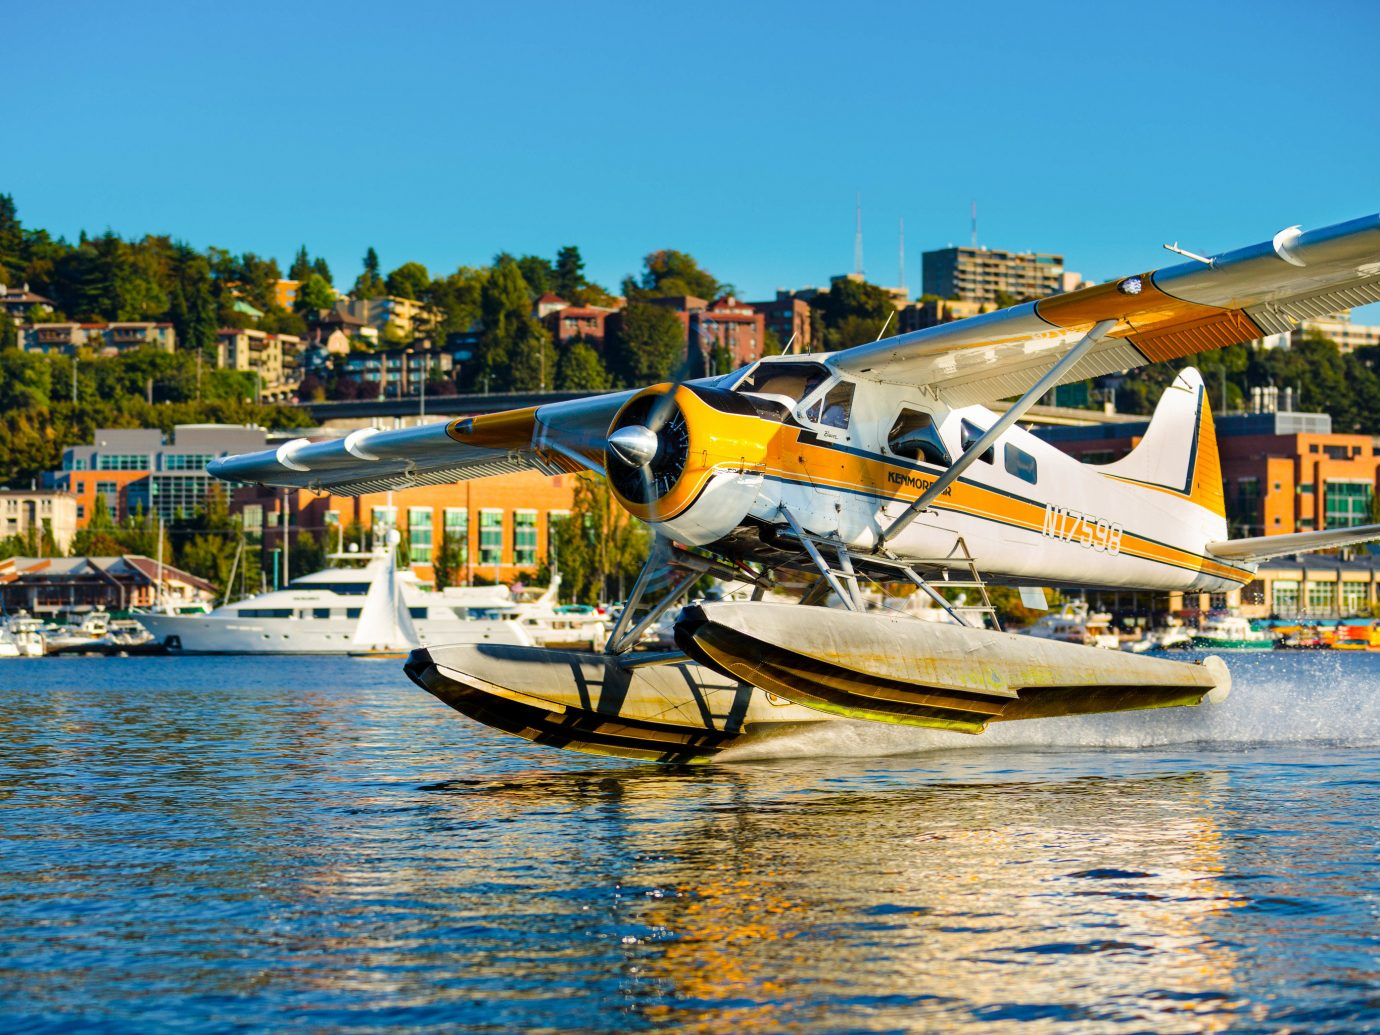 Trip Ideas sky outdoor water seaplane airplane water transportation aircraft Boat waterway atmosphere of earth light aircraft yellow leisure reflection boating aviation Harbor